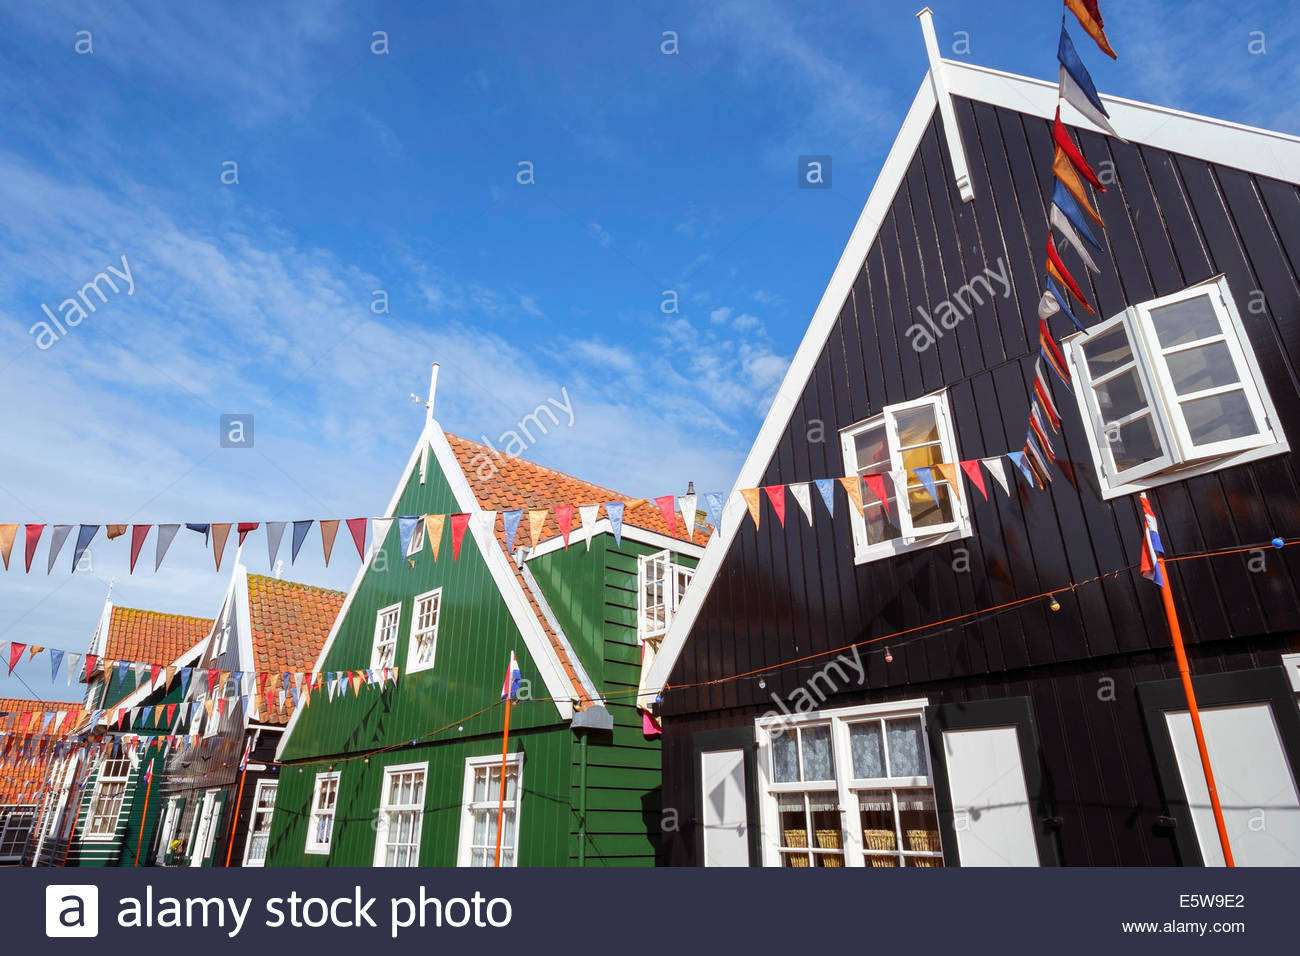 Traditional wooden houses decorated with flags of Dutch national colors for Koningsdag, or King's Day, Marken, - Stock Image